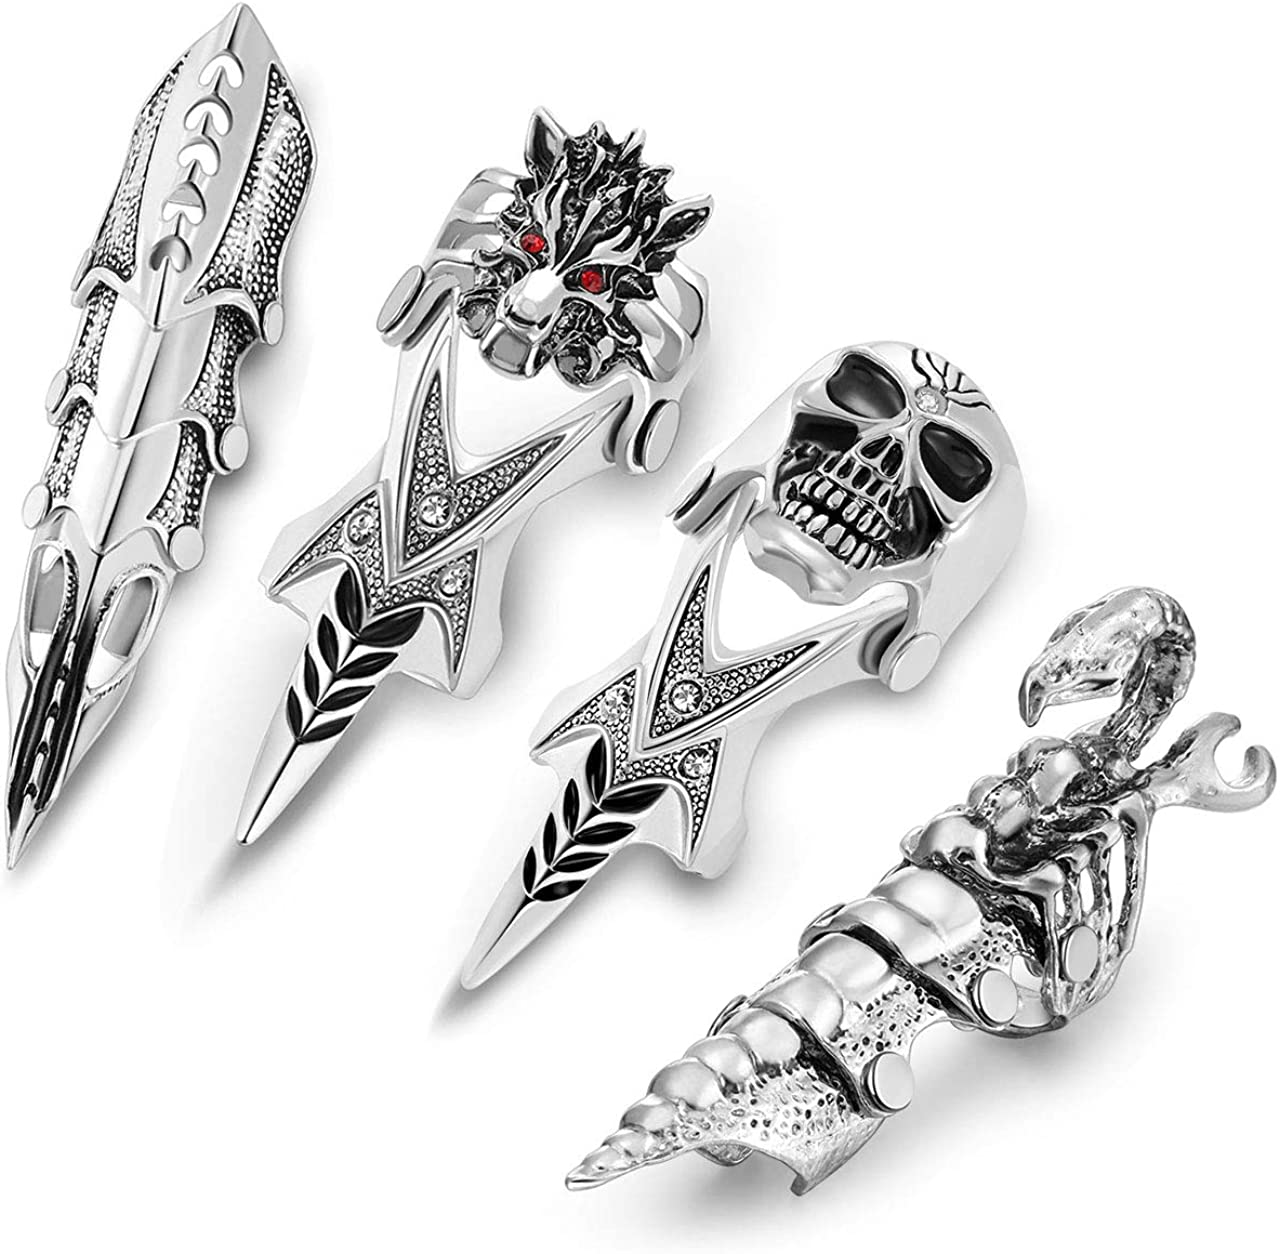 PiercingJ Men's Knuckle Joint Full Finger Double Ring Punk Rock Gothic Hinged Activity Rings Halloween Cosplay Costume Accessories Jewelry